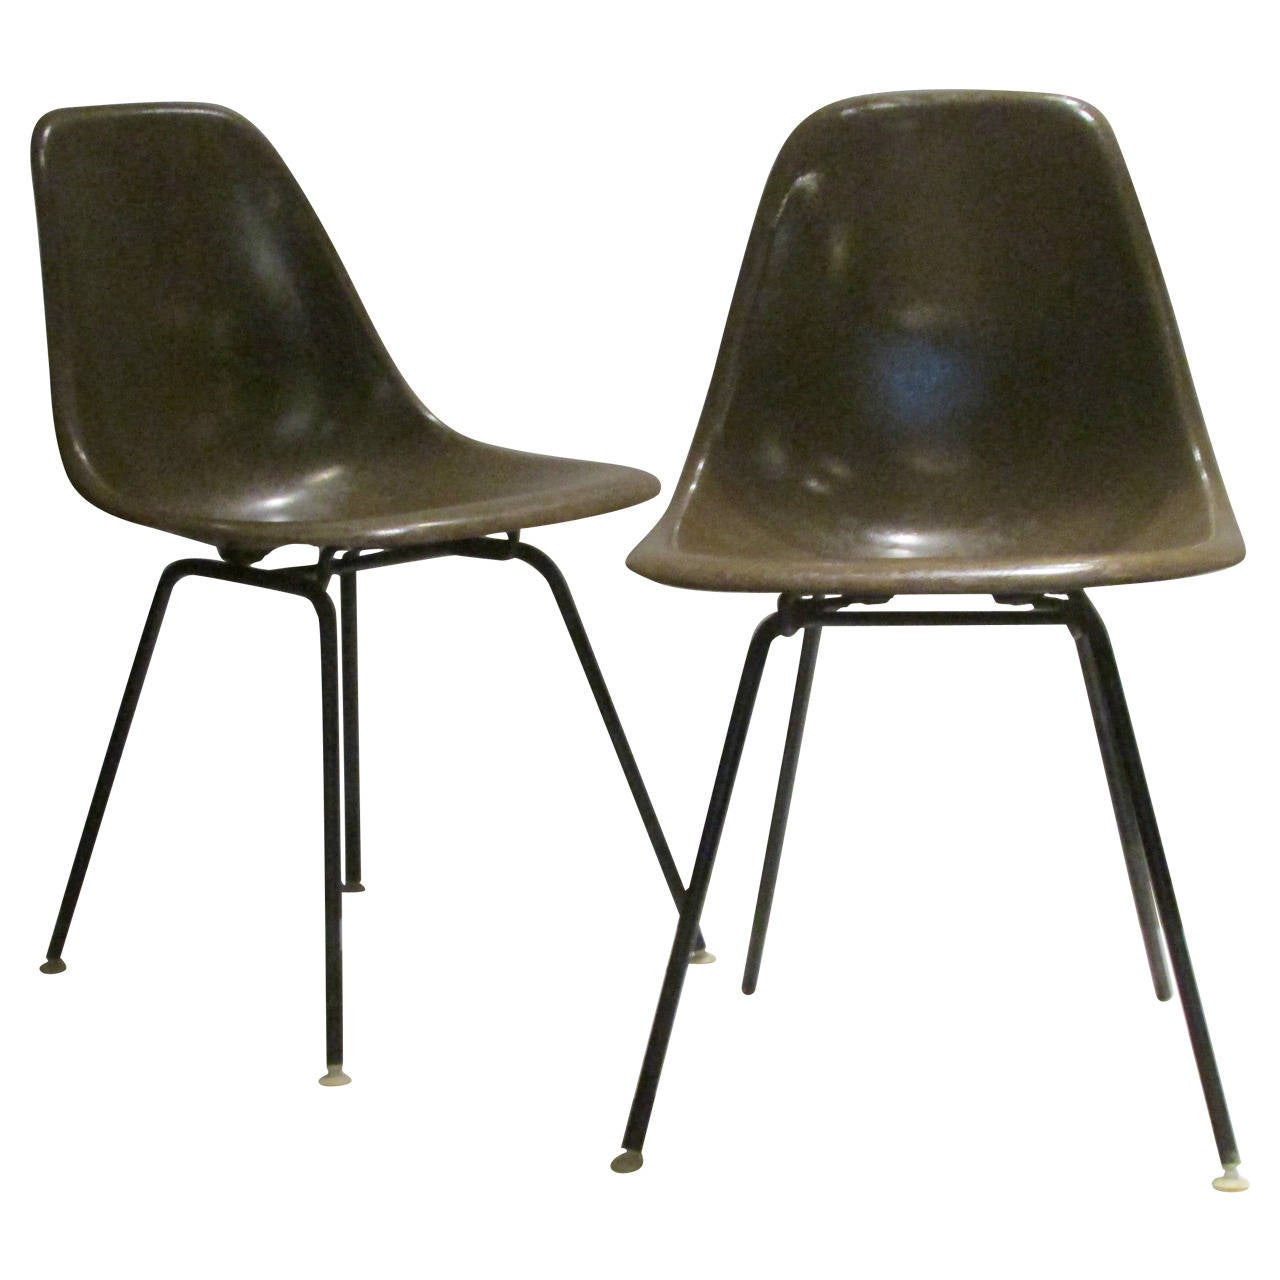 Early Eames for Herman Miller Seal Brown Fiberglass Chairs